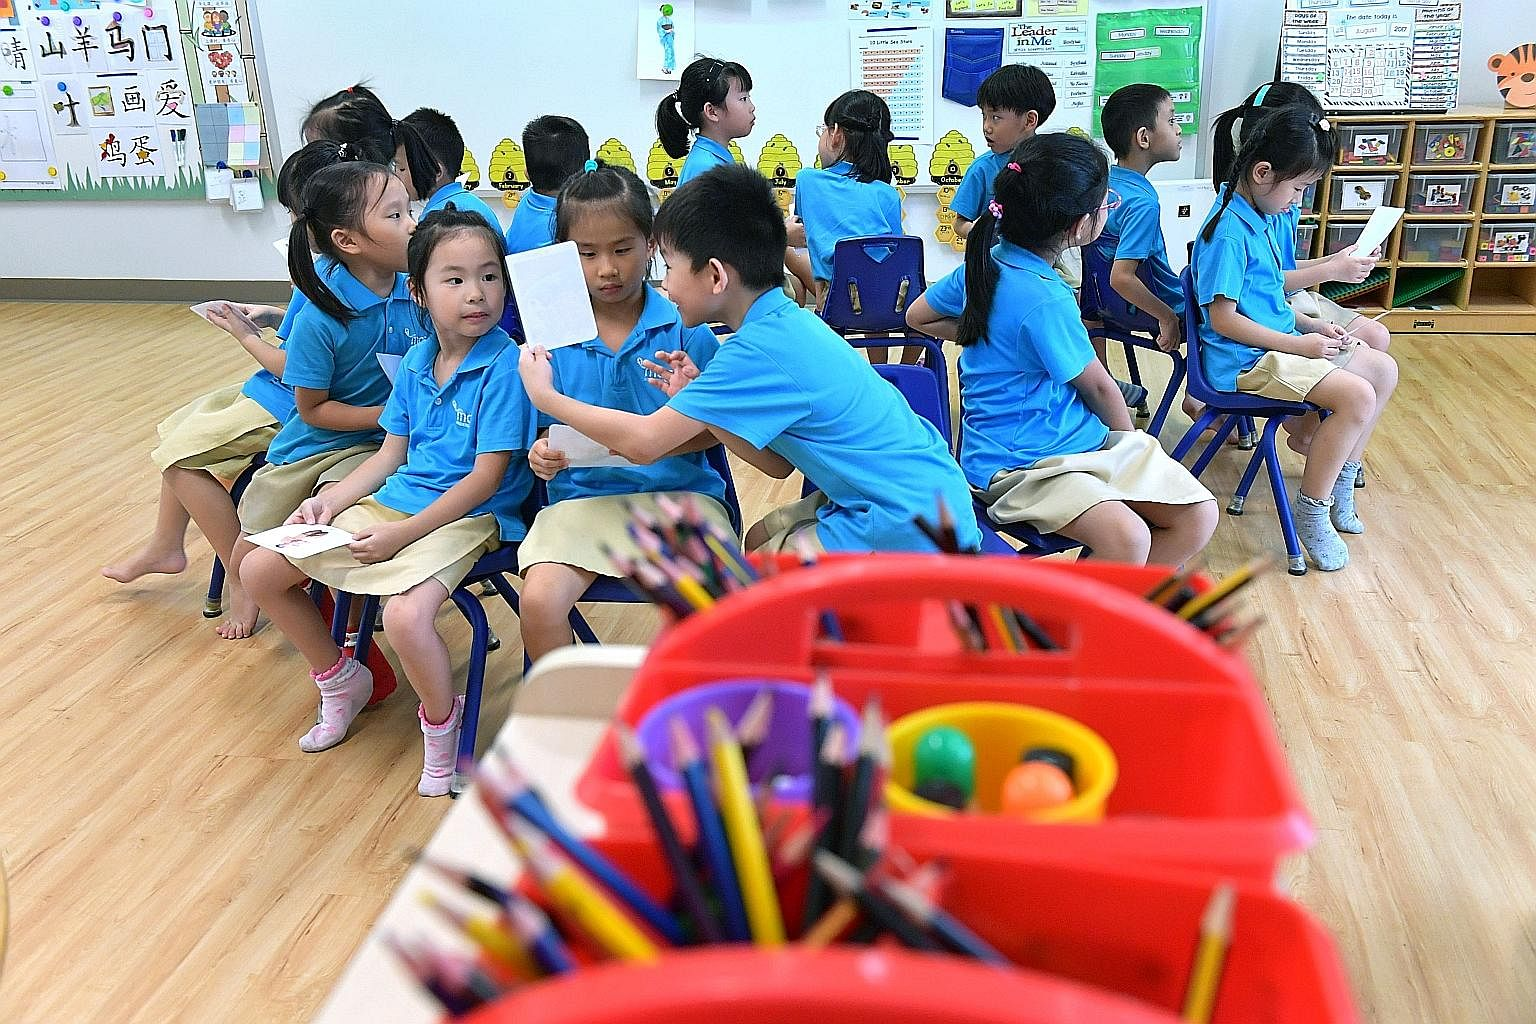 Children at the MOE Kindergarten @ Frontier Primary. While it makes sense from a planning perspective to facilitate a smooth transition for children from MOE kindergartens on the premises of primary schools, it is also worthwhile to consider the long